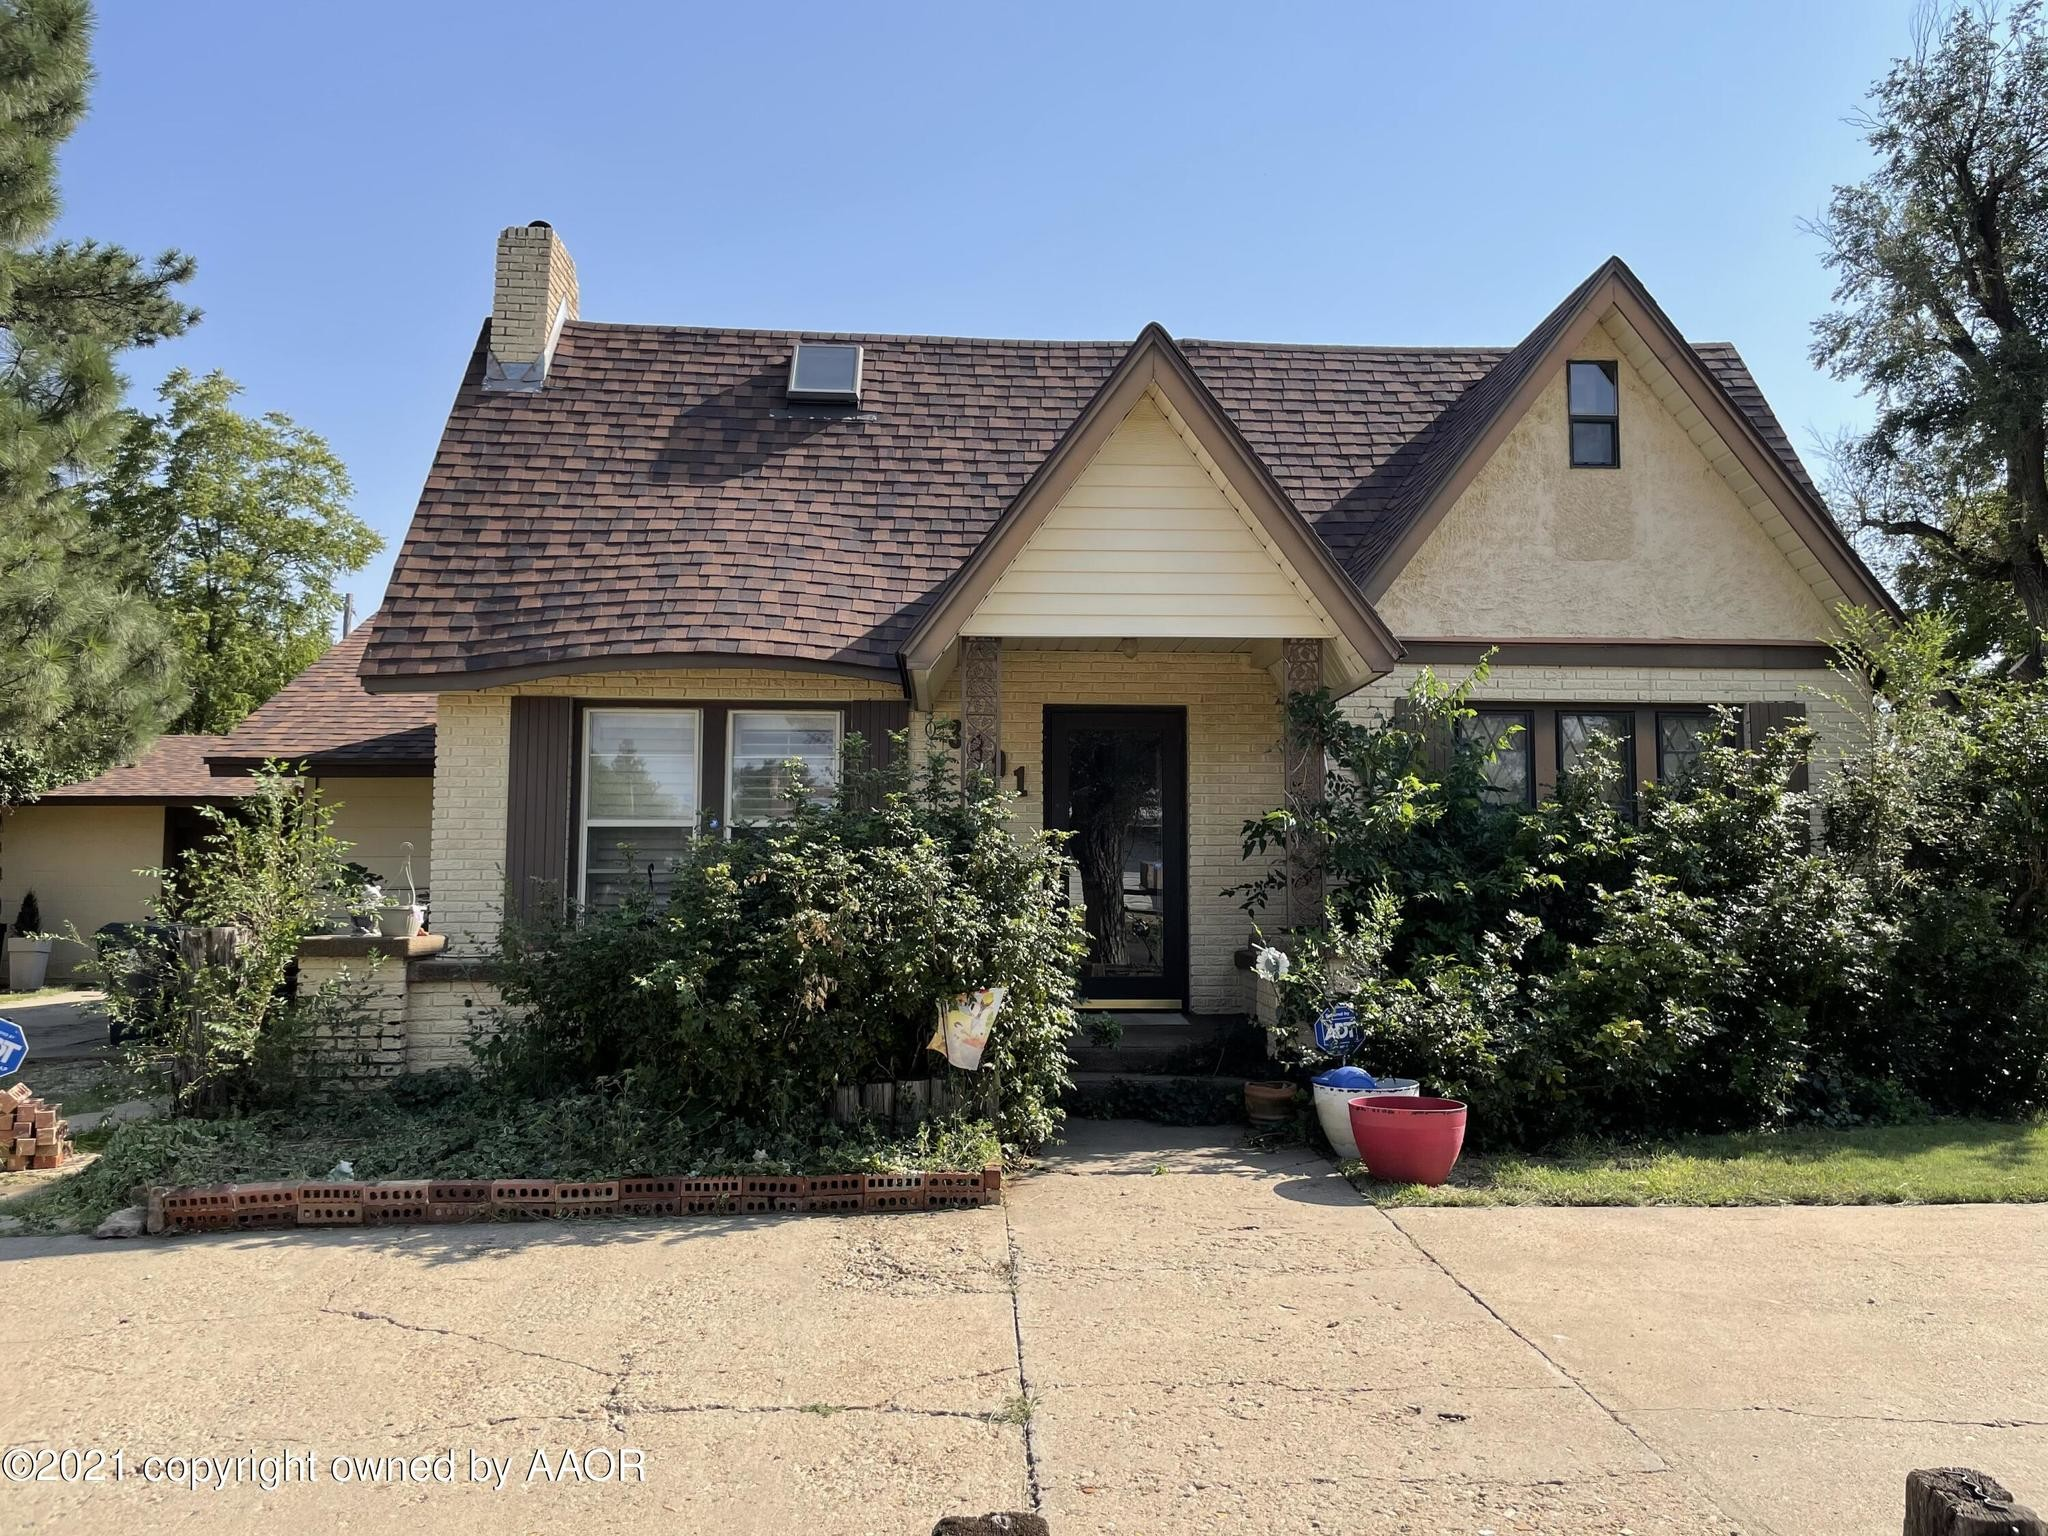 1524 SqFt House In Country Club Terrace